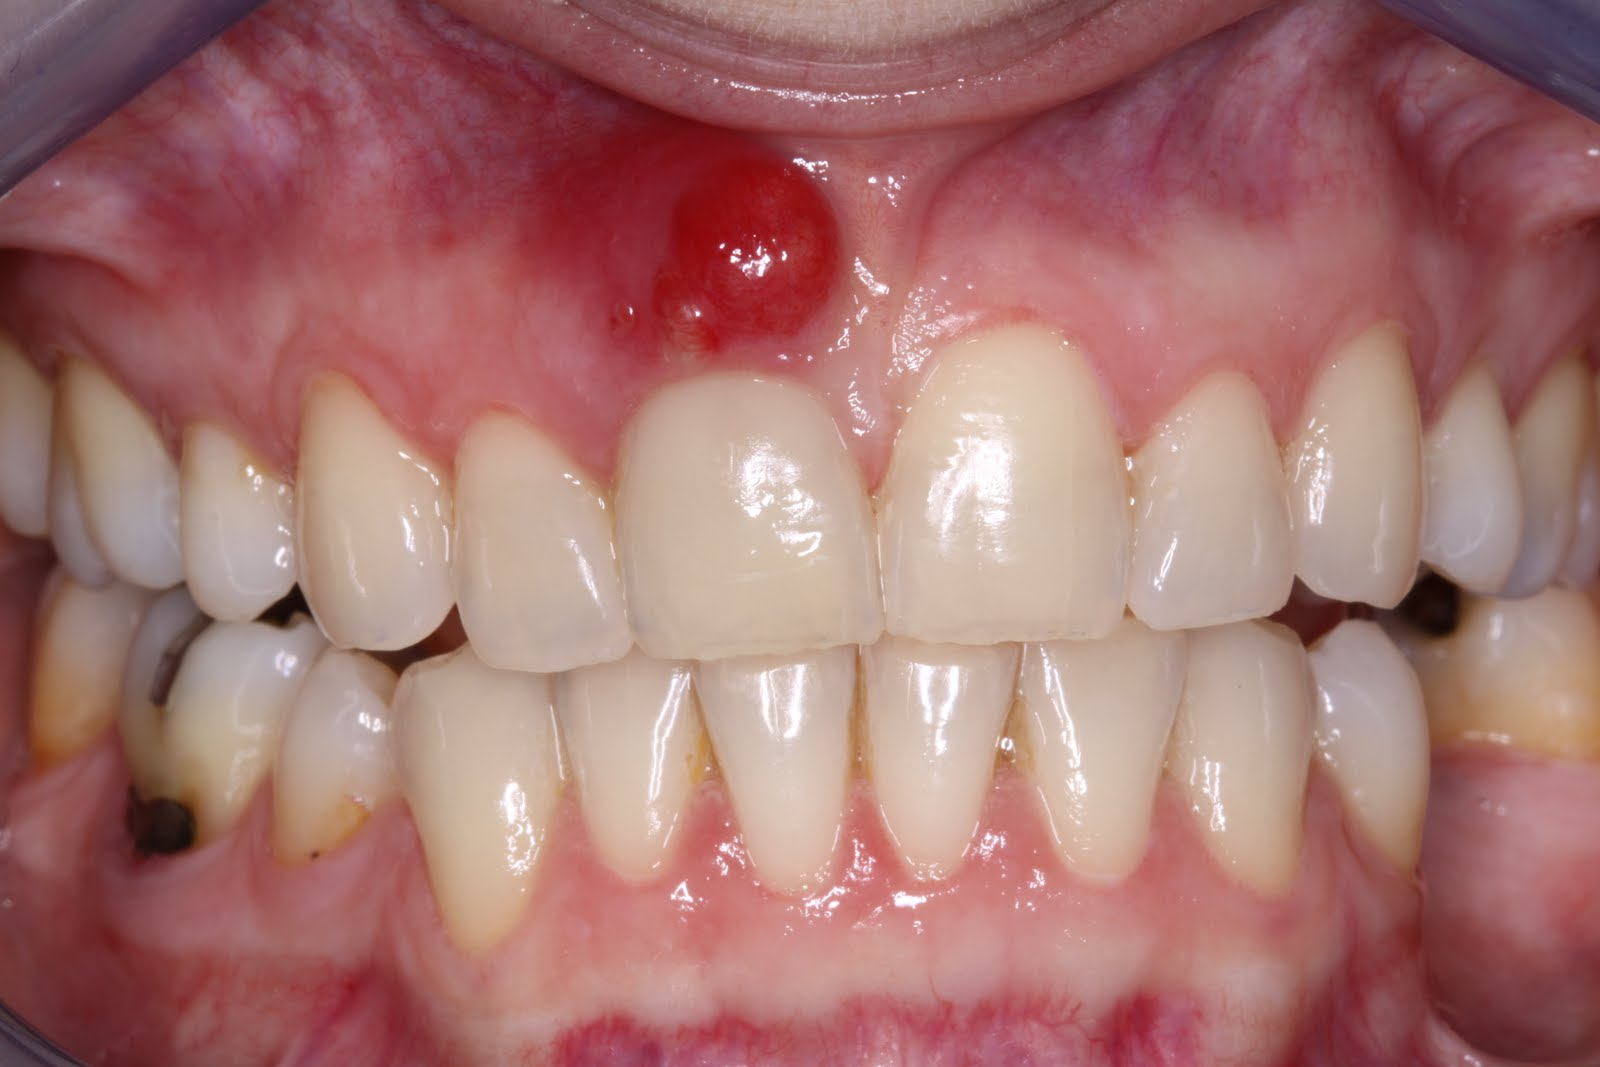 tooth abscess usually occurs as a result of an untreated dental